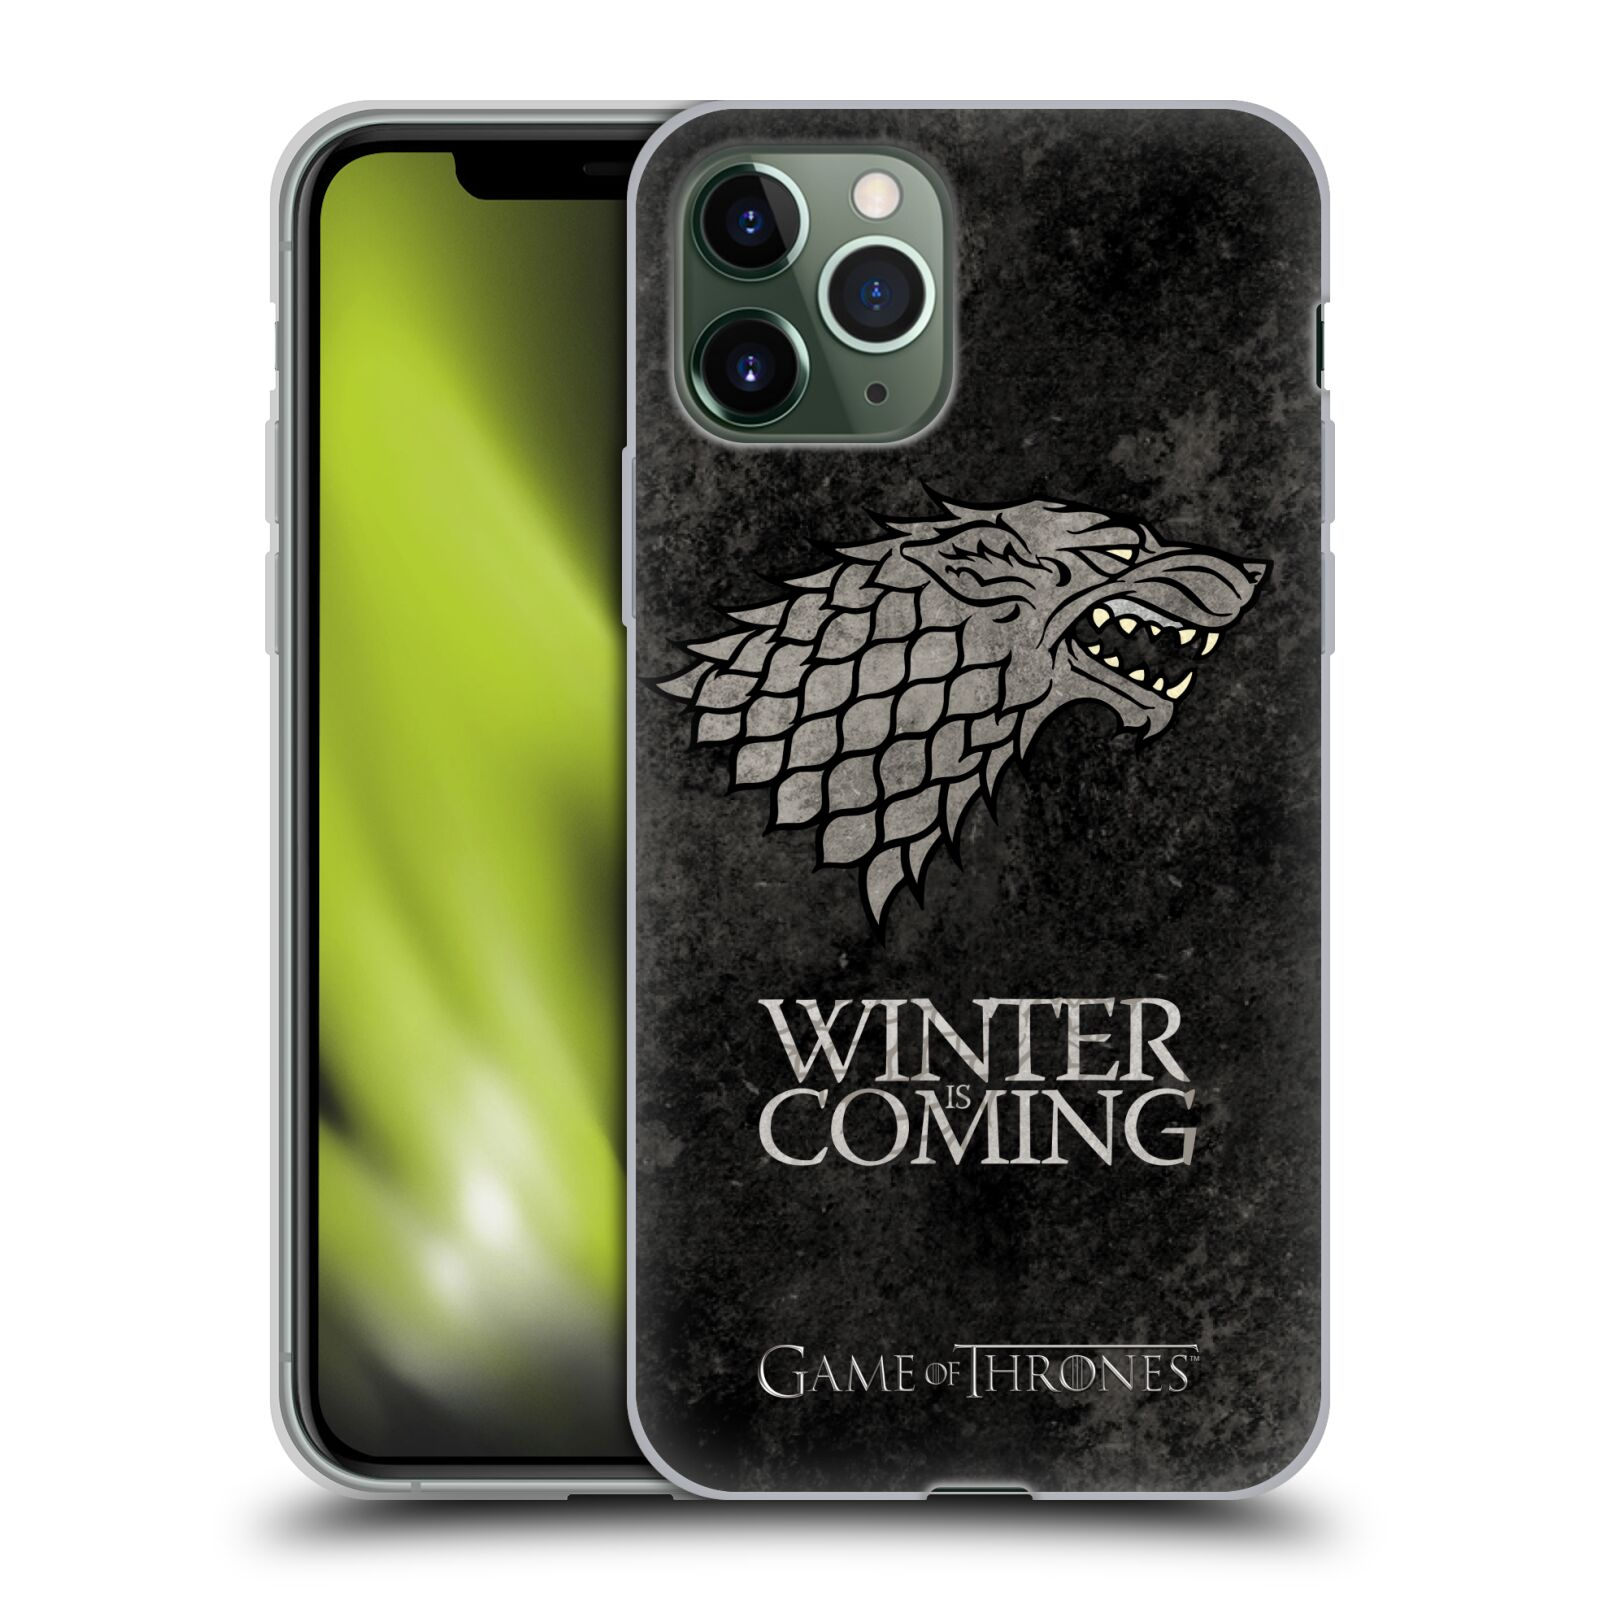 lagerfeld obaly iphone xr | Silikonové pouzdro na mobil Apple iPhone 11 Pro - Head Case - Hra o trůny - Stark - Winter is coming